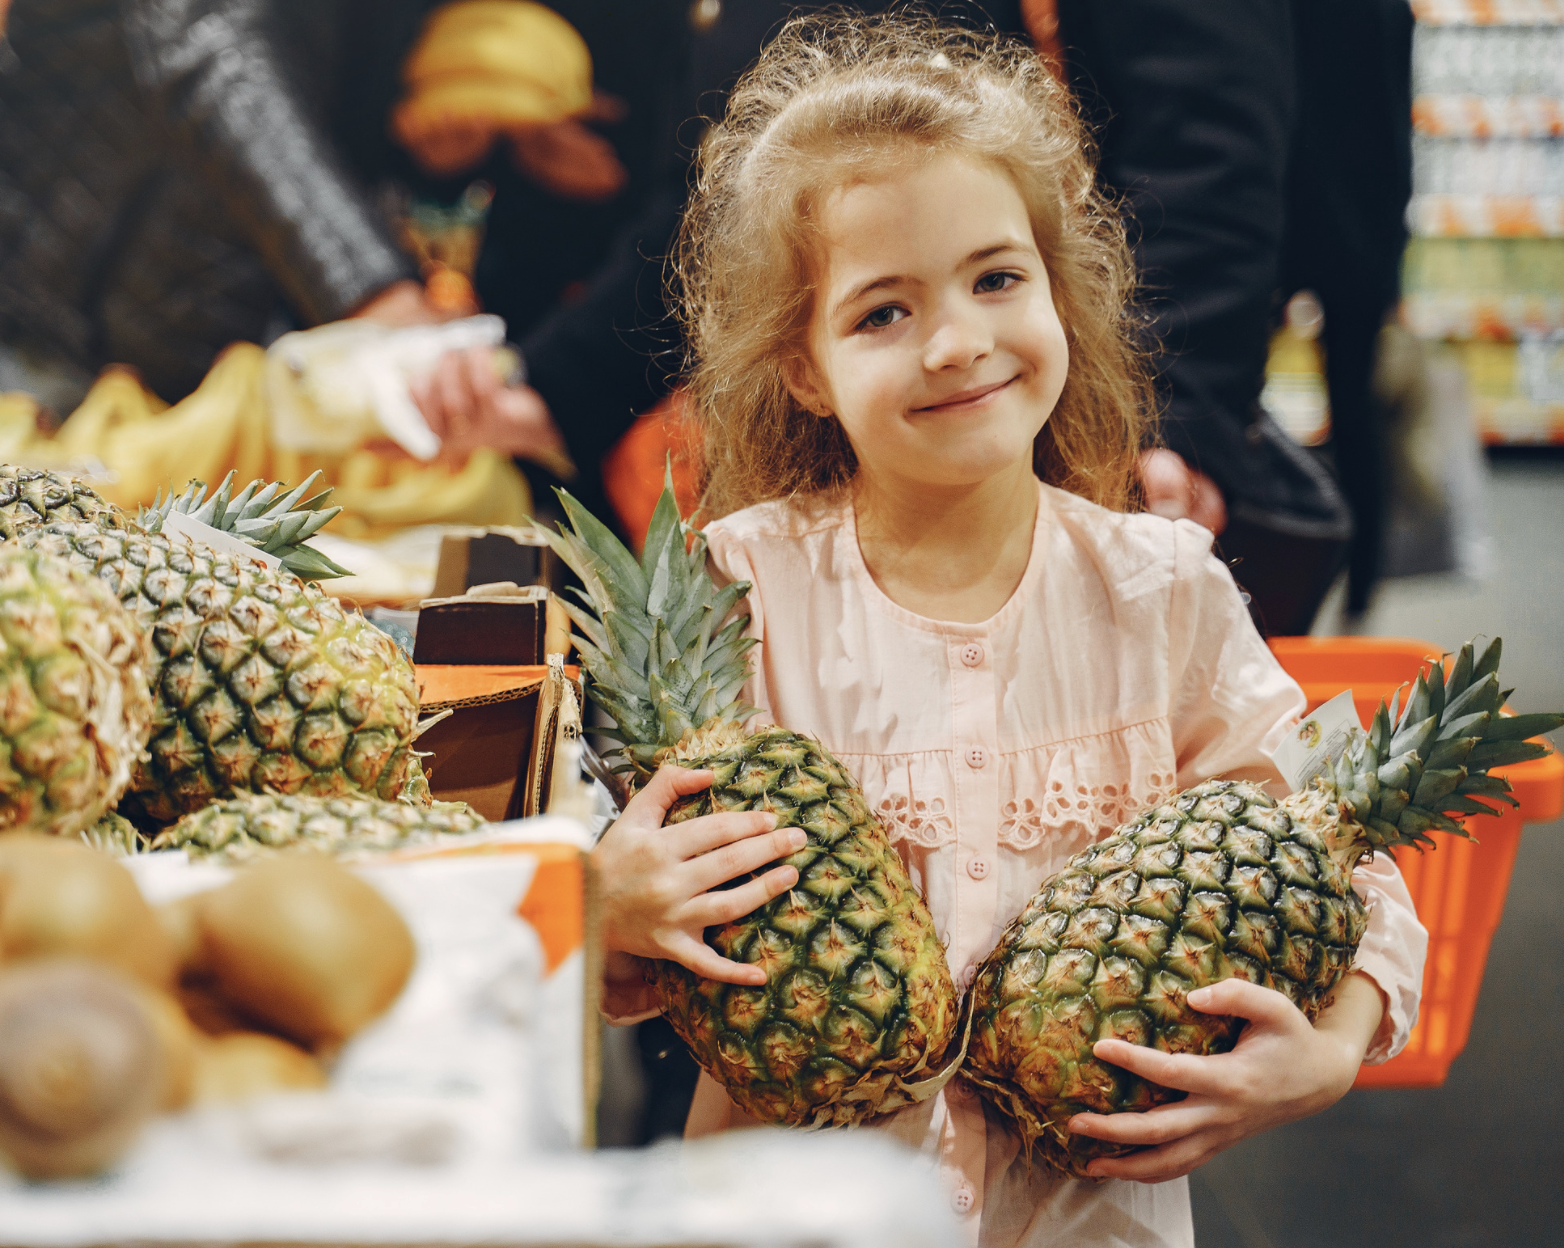 Say Aloha to fun learning with a pineapple! Read on to learn how pineapple can be used to teach your kids geography, history, nutrition, science and more! #pineapples #education #summerlearning #kids #funforkids #kidsactivities #summeractivities #homeschooling